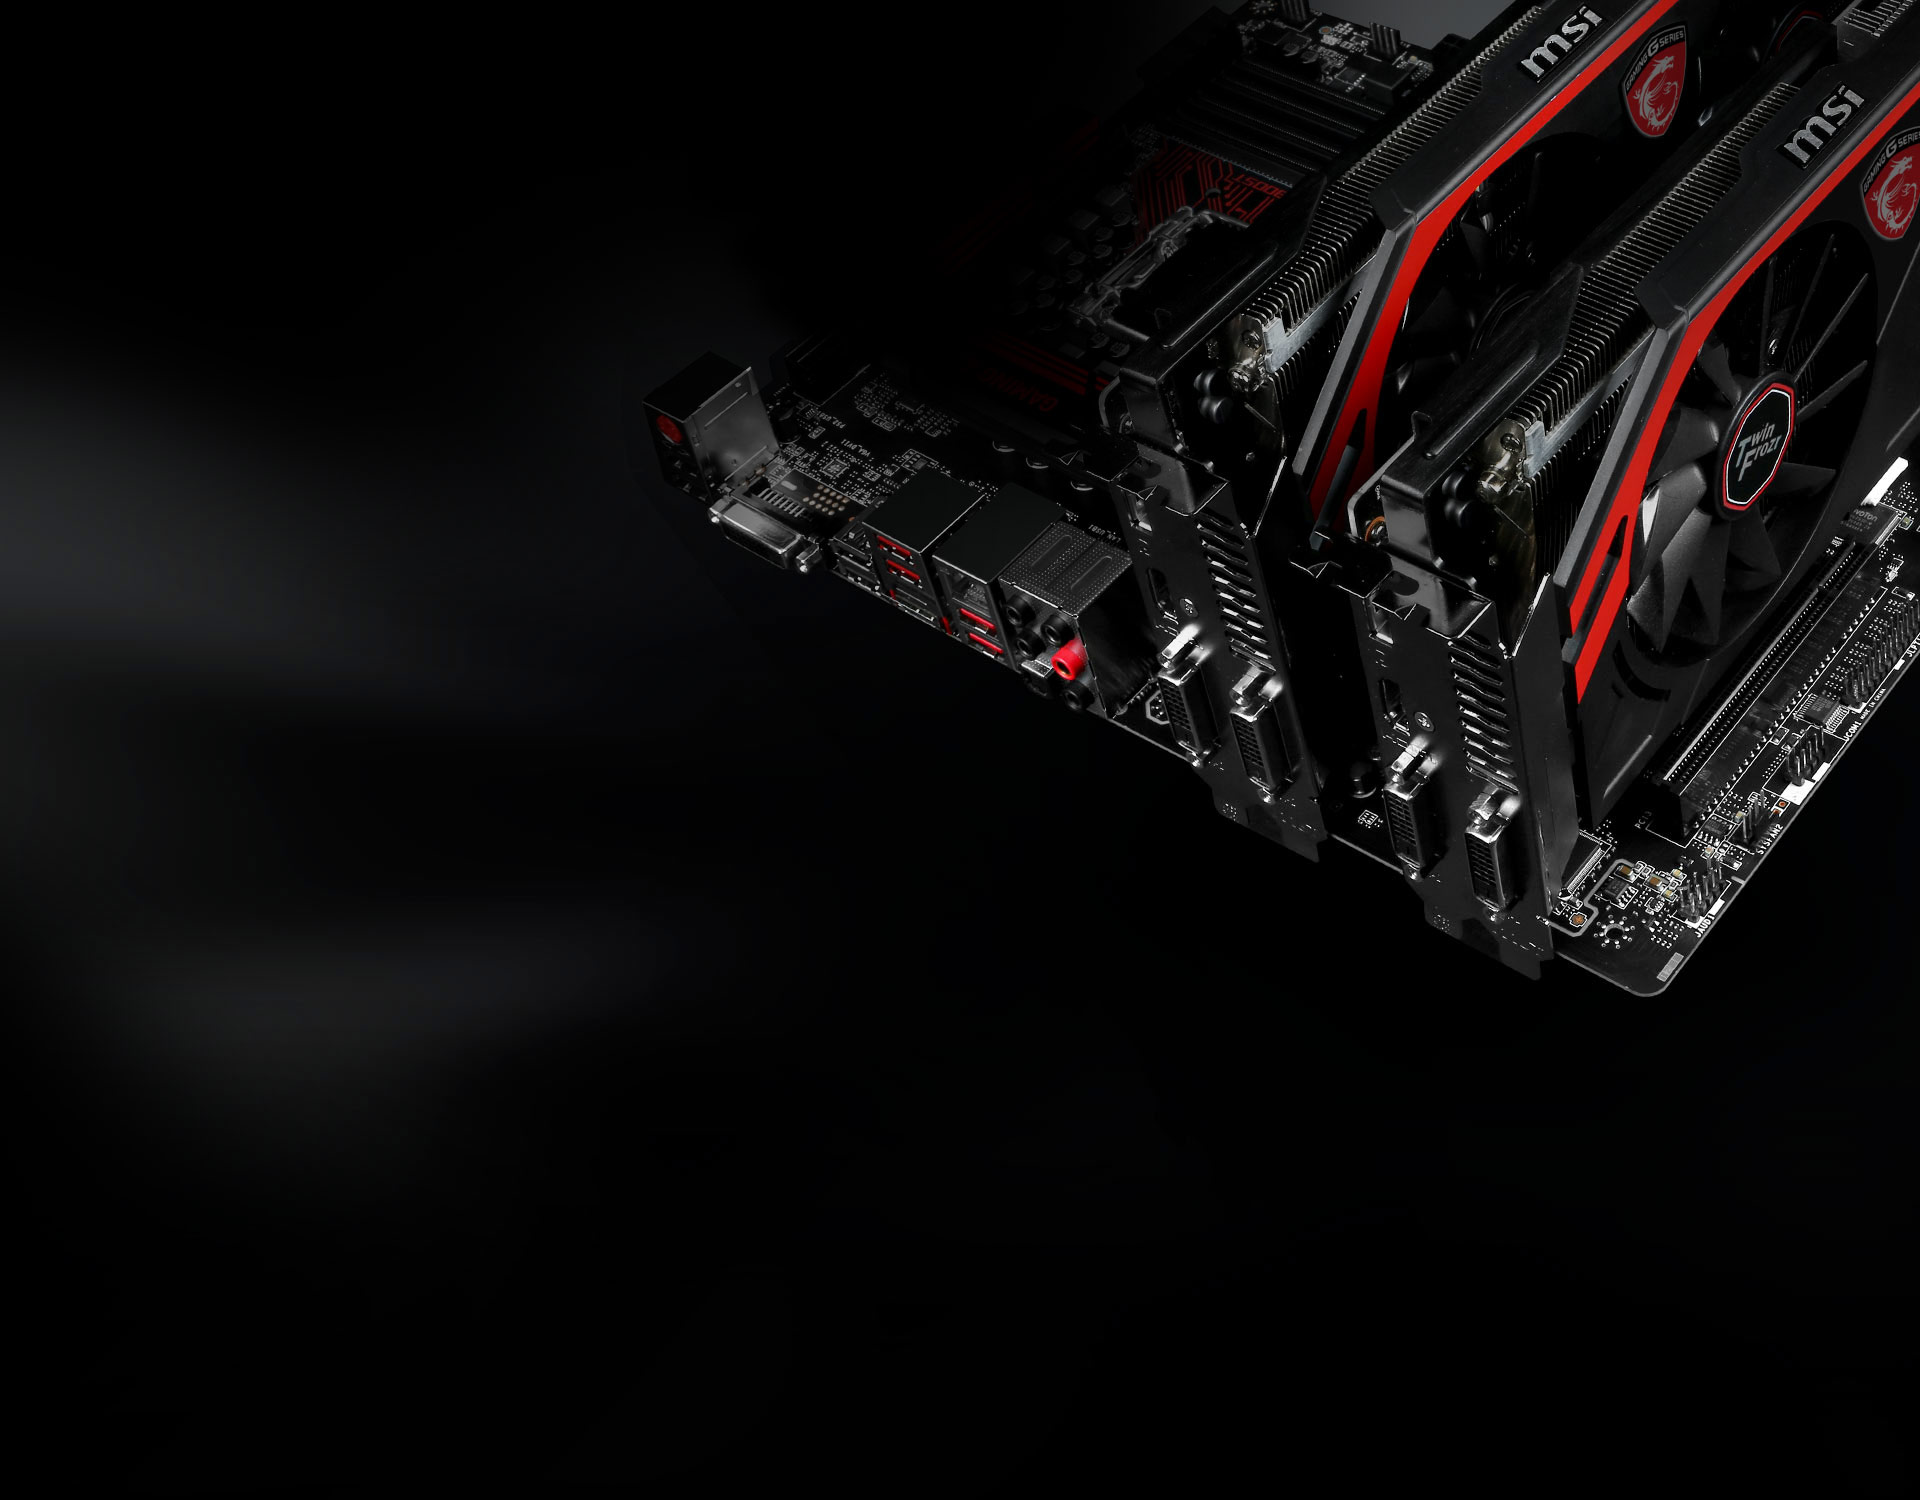 Photo of motherboard in review: The new MSI is simply beautiful